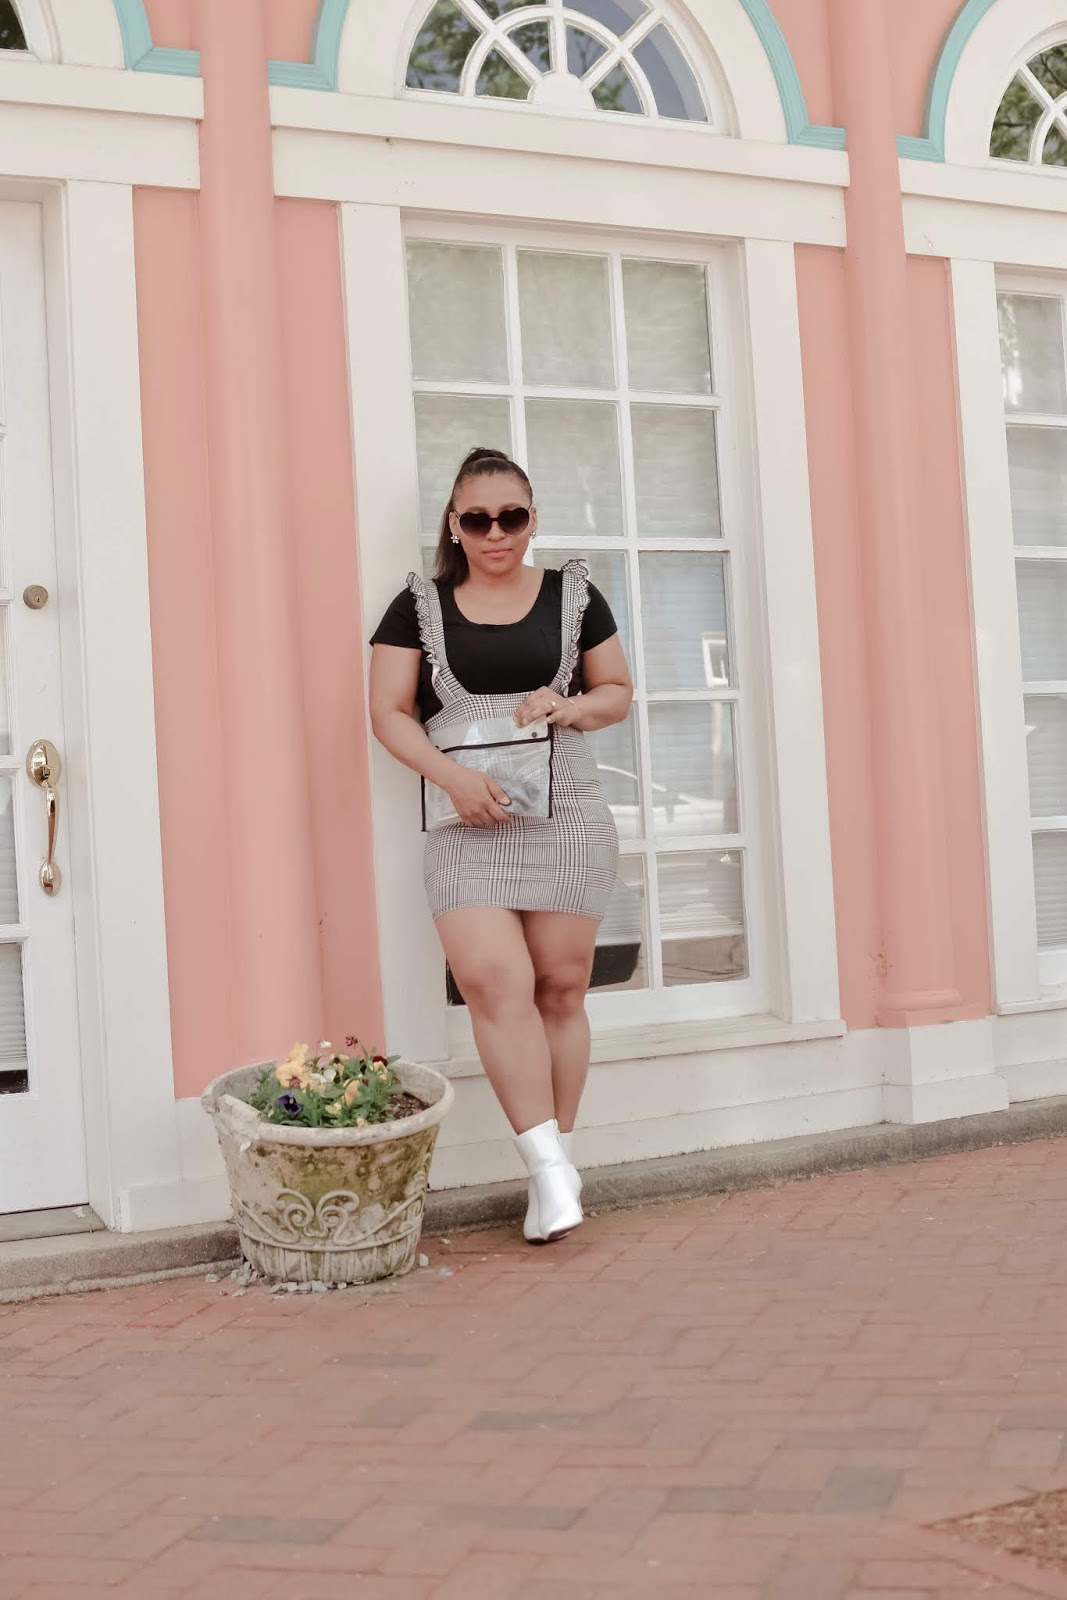 femmeluxe, luxegal, summerstyle, summer outfit ideas, jumpsuit, black and white outfits, diffeyewear, clear bag trend, mom blogggers, stylish moms